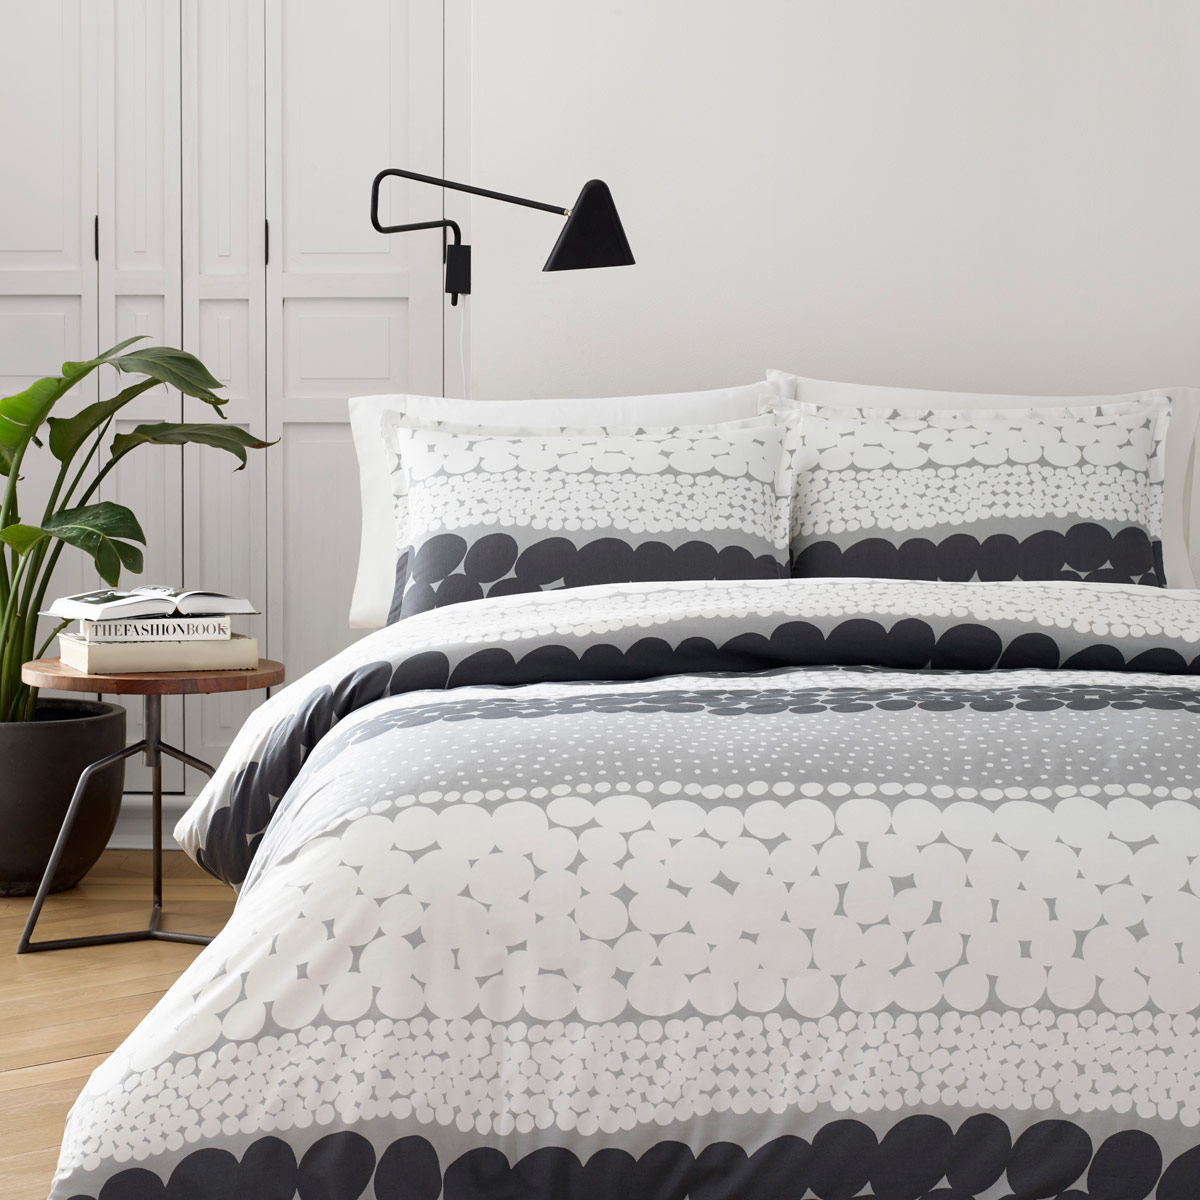 black home company bed mini mi set king bonecollector bone decorating shop grey sets blckgrey the collector comforter fullcomforter bedding